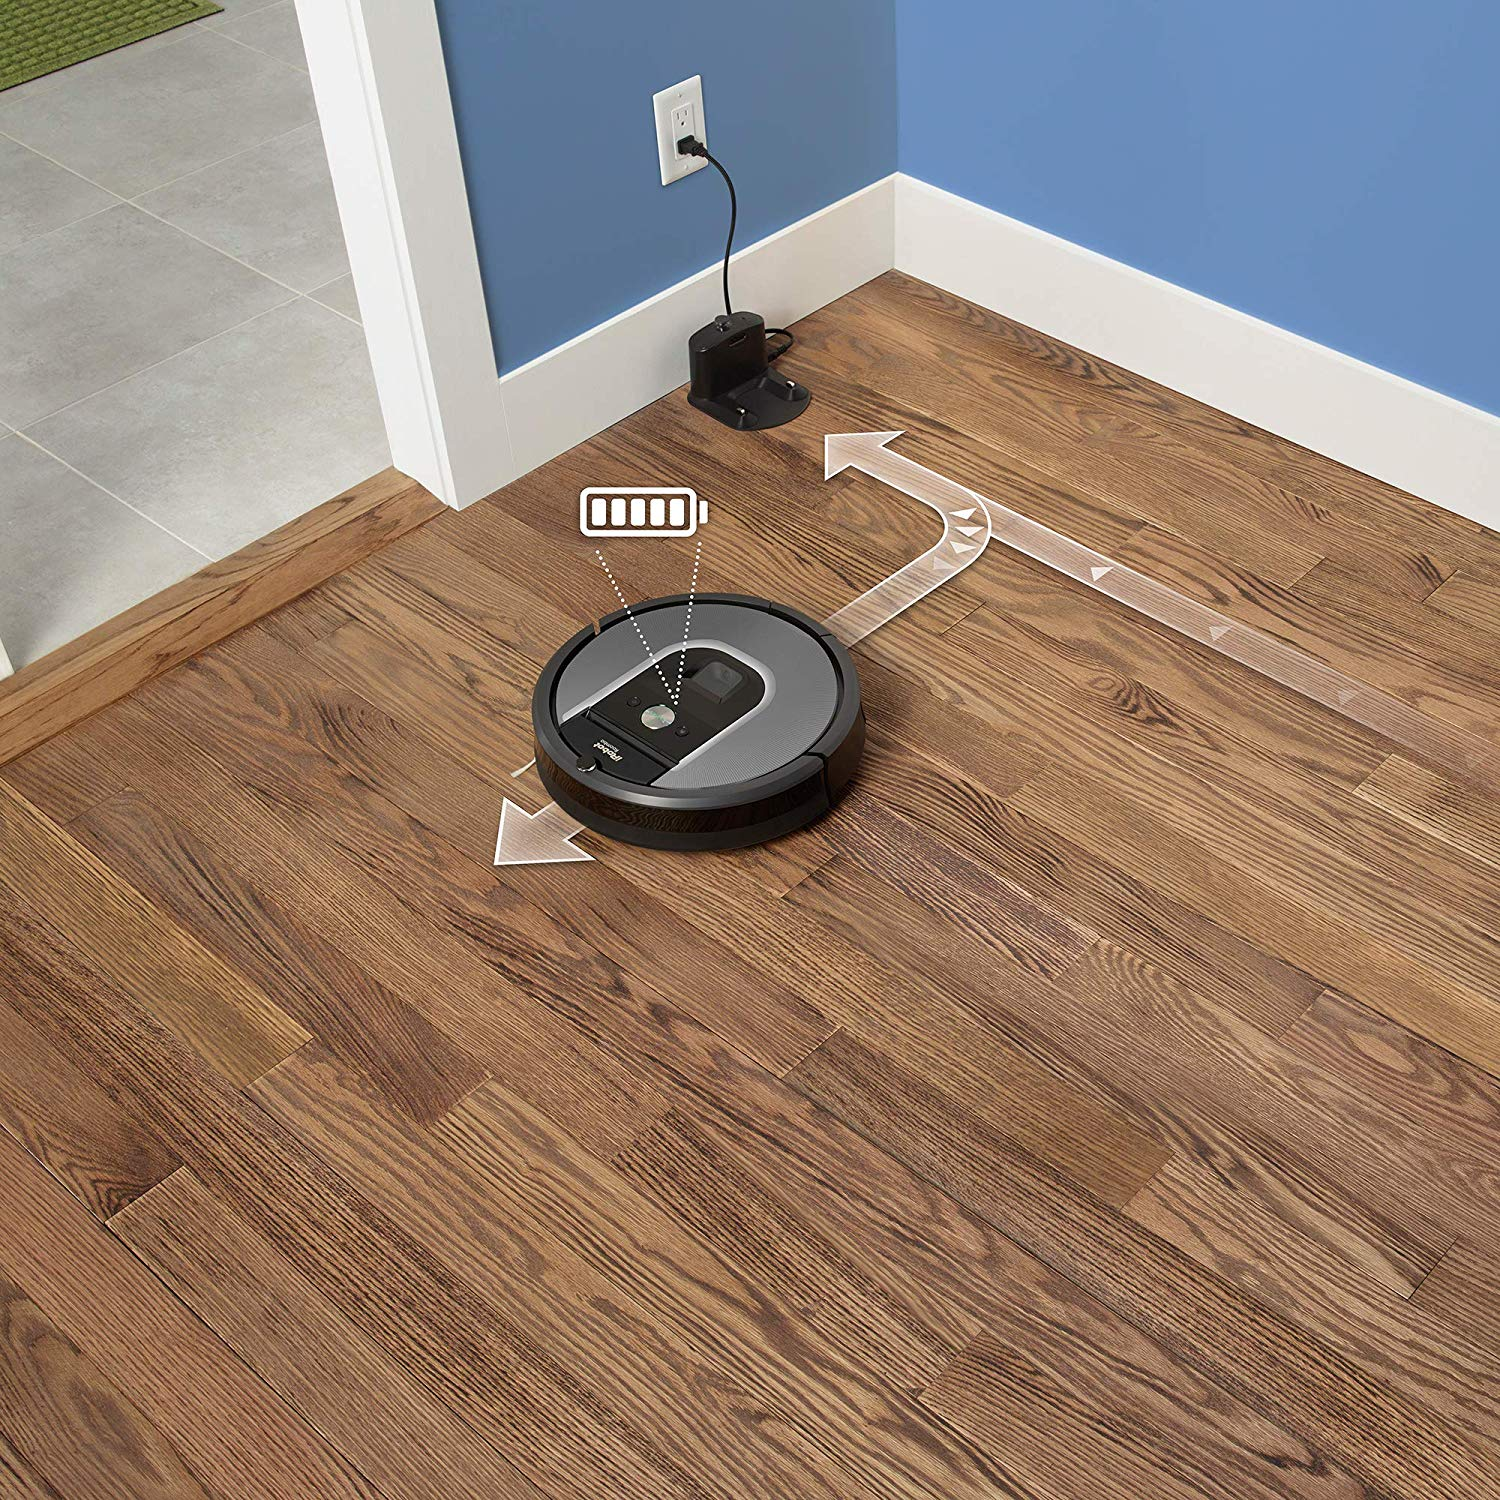 Roomba 960 Automatic charging